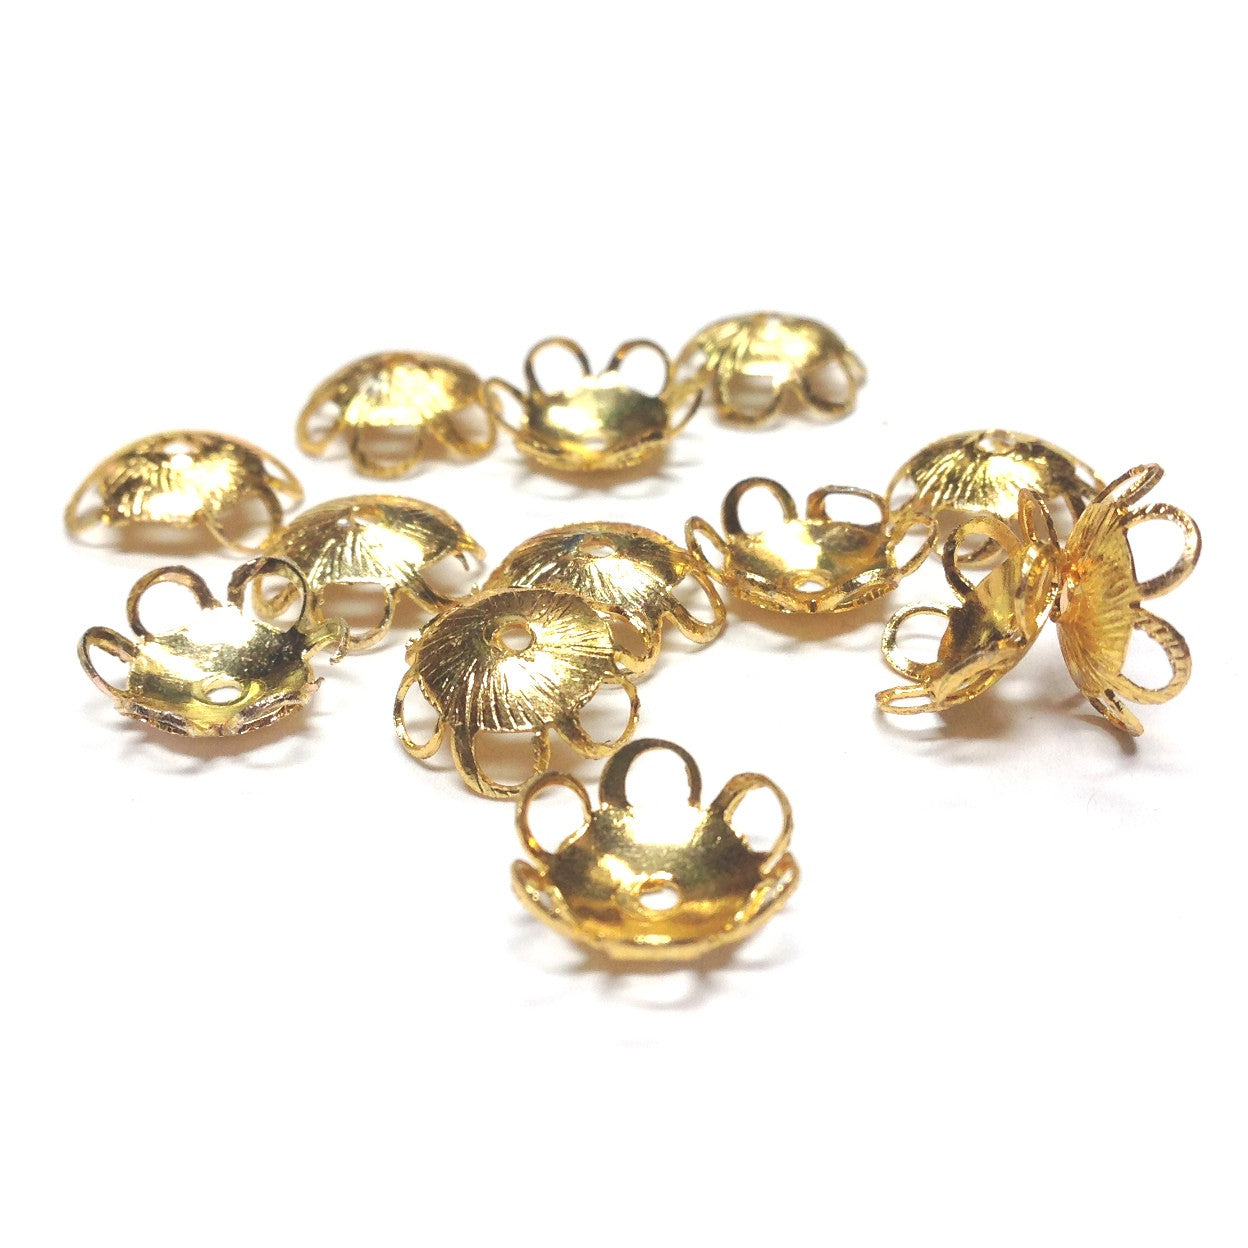 11X3.5MM Goldtone Filigree Cap (36 pieces)